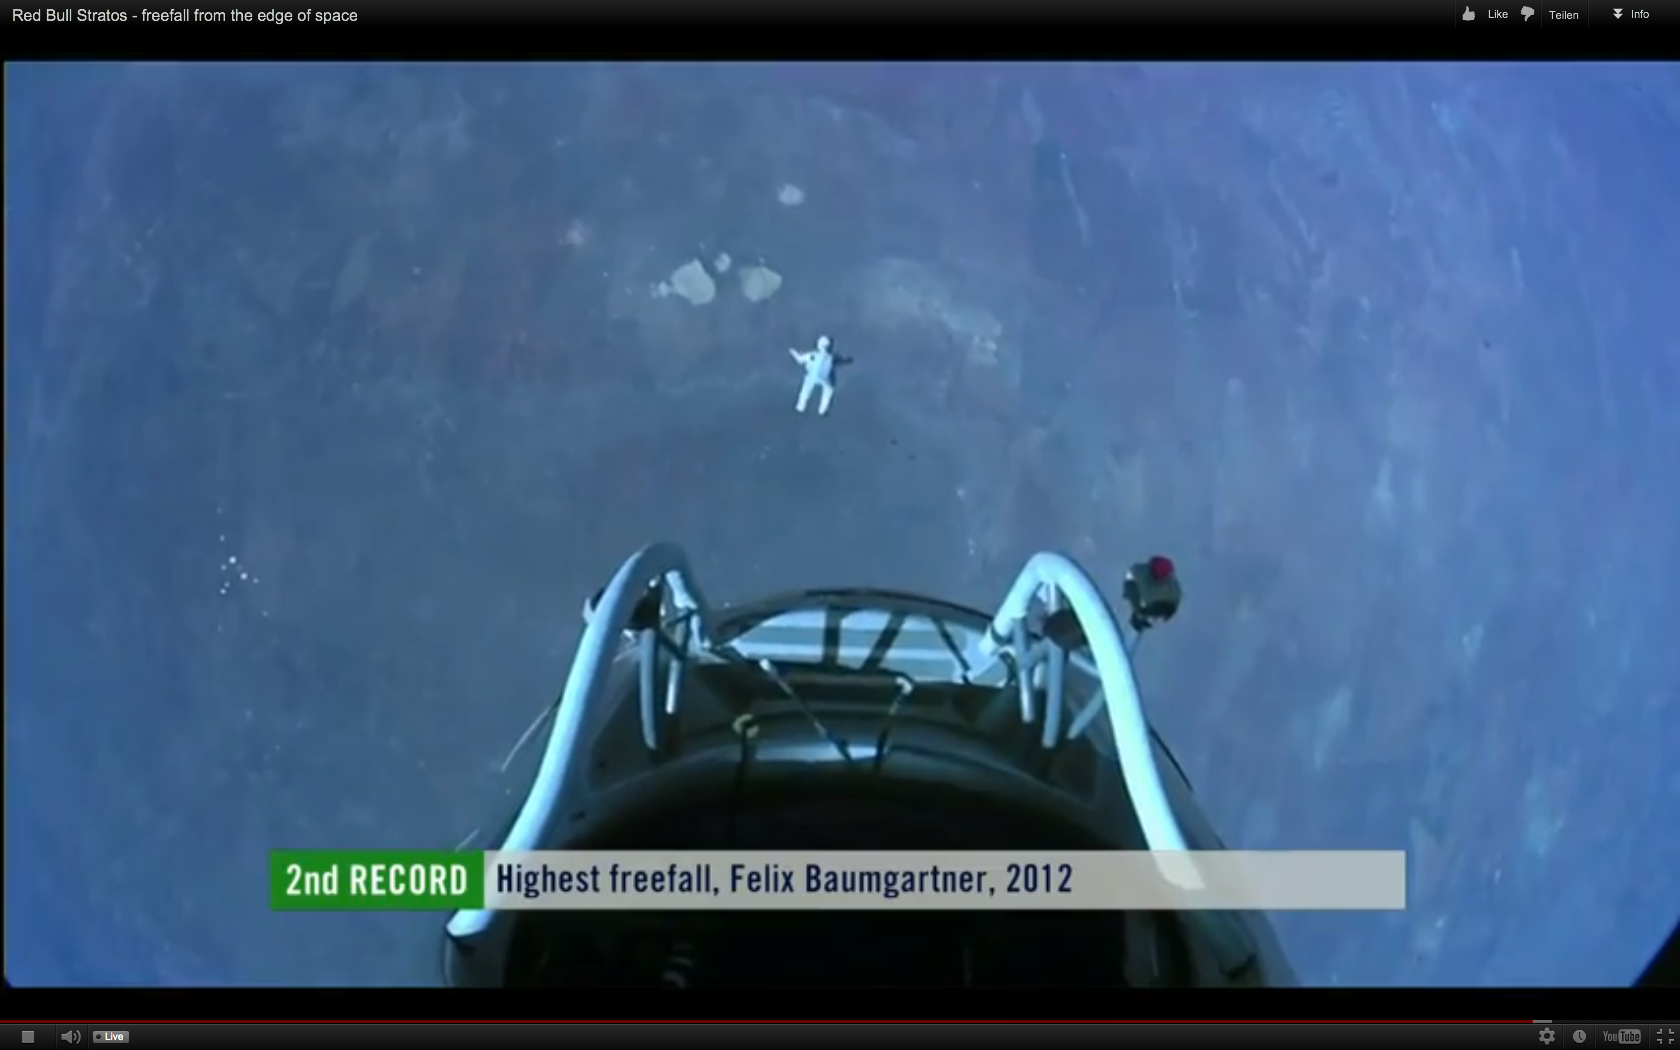 Fuck Yeah, Felix Baumgartner! (Screenshots & Video)